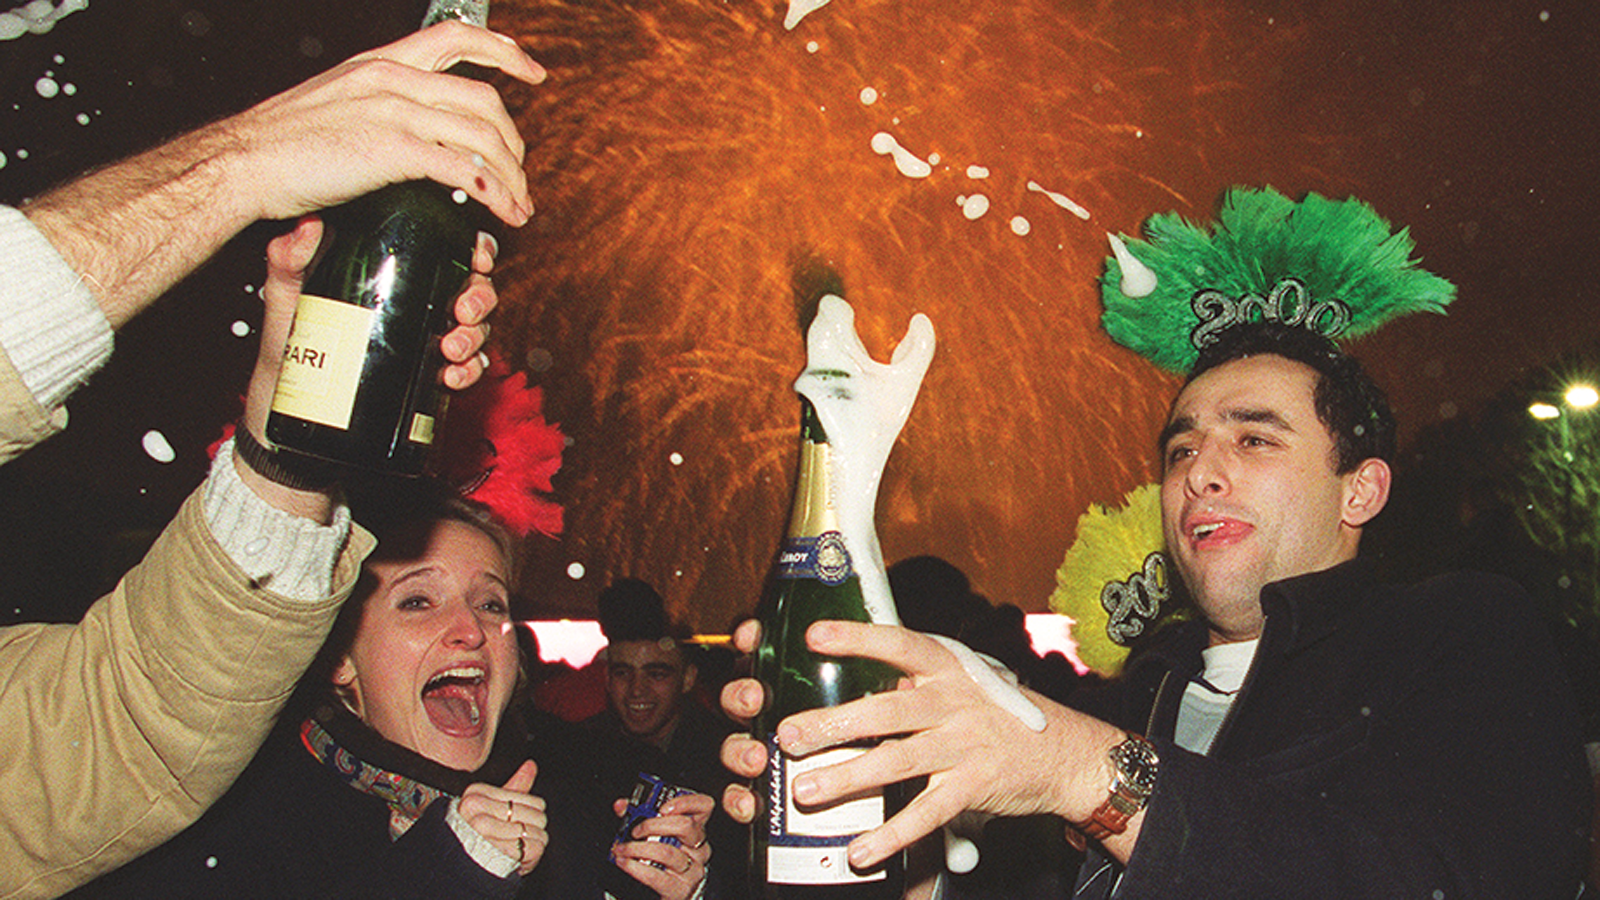 Celebrations of the new millennium boosted Champagne sales.